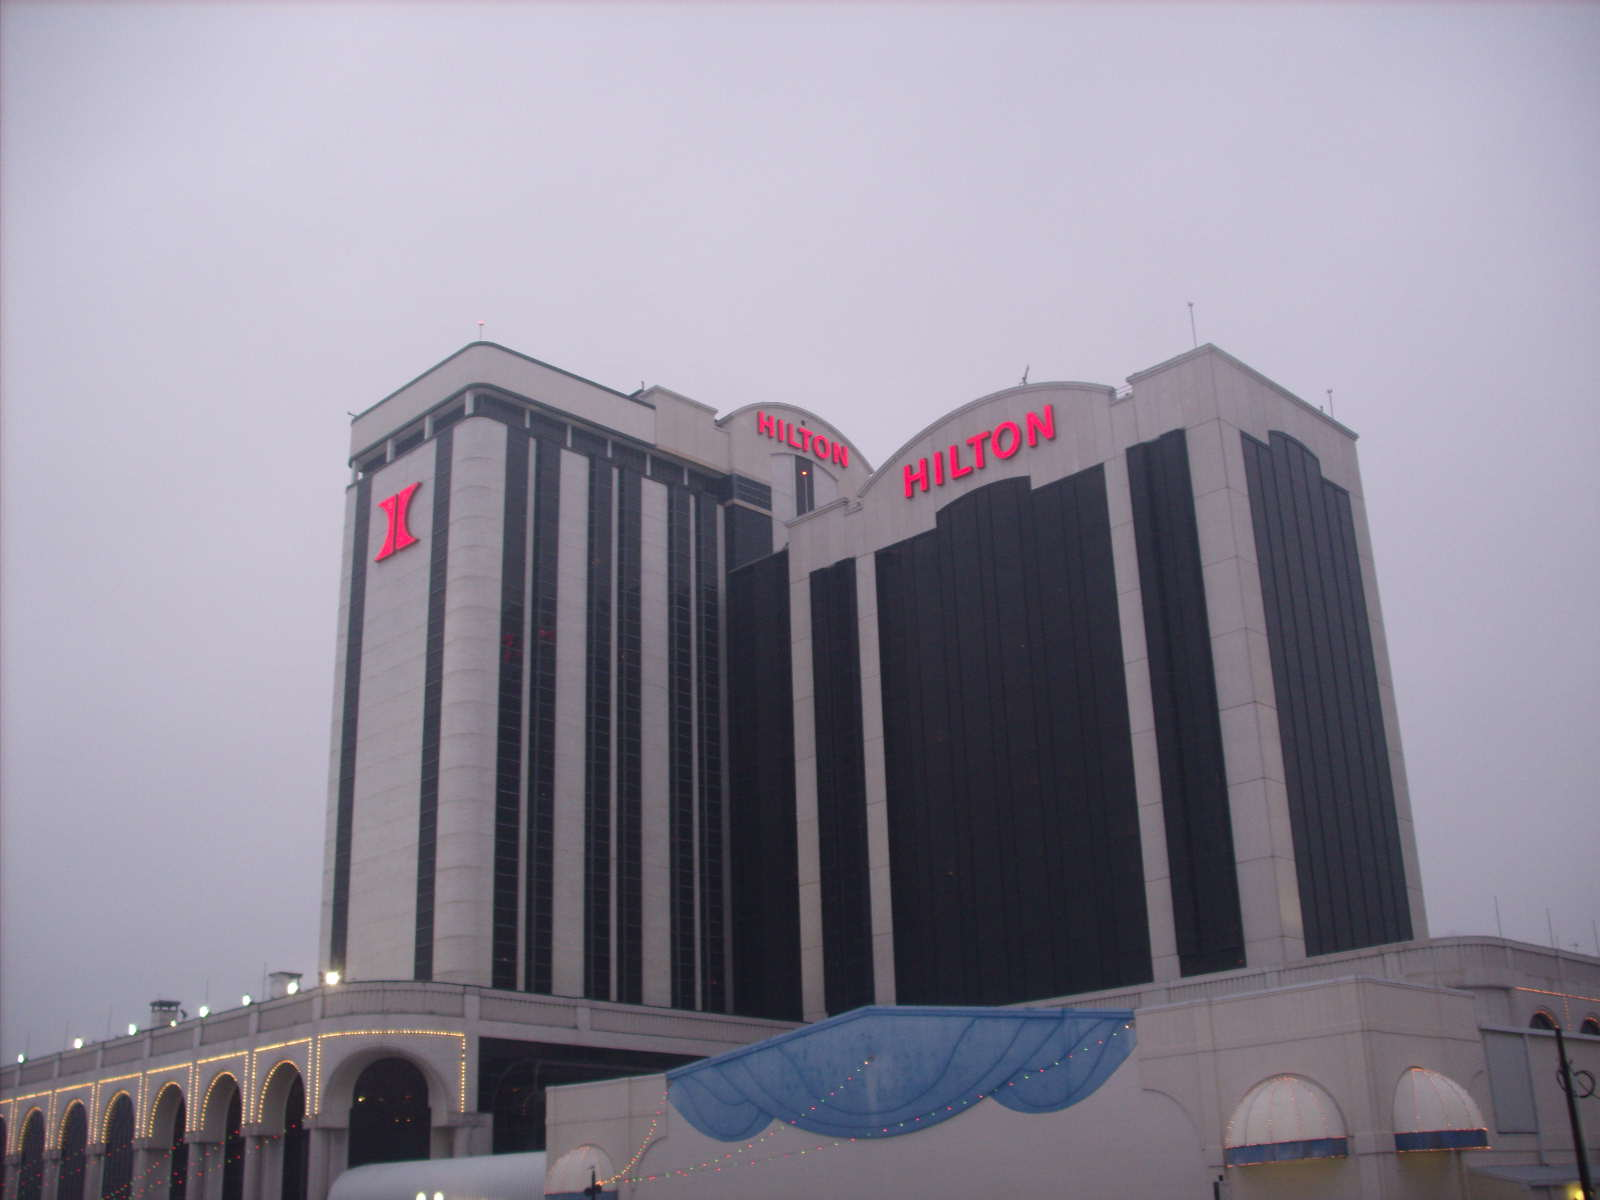 Photo of the Hilton Hotel and Casino, Atlantic City, New Jersey. The Hilton is now named The Atlantic Club Casino Hotel. Photo credit: Marion Weiscarger Roughsedge. Copyright 2009 - 2012. All rights reserved.